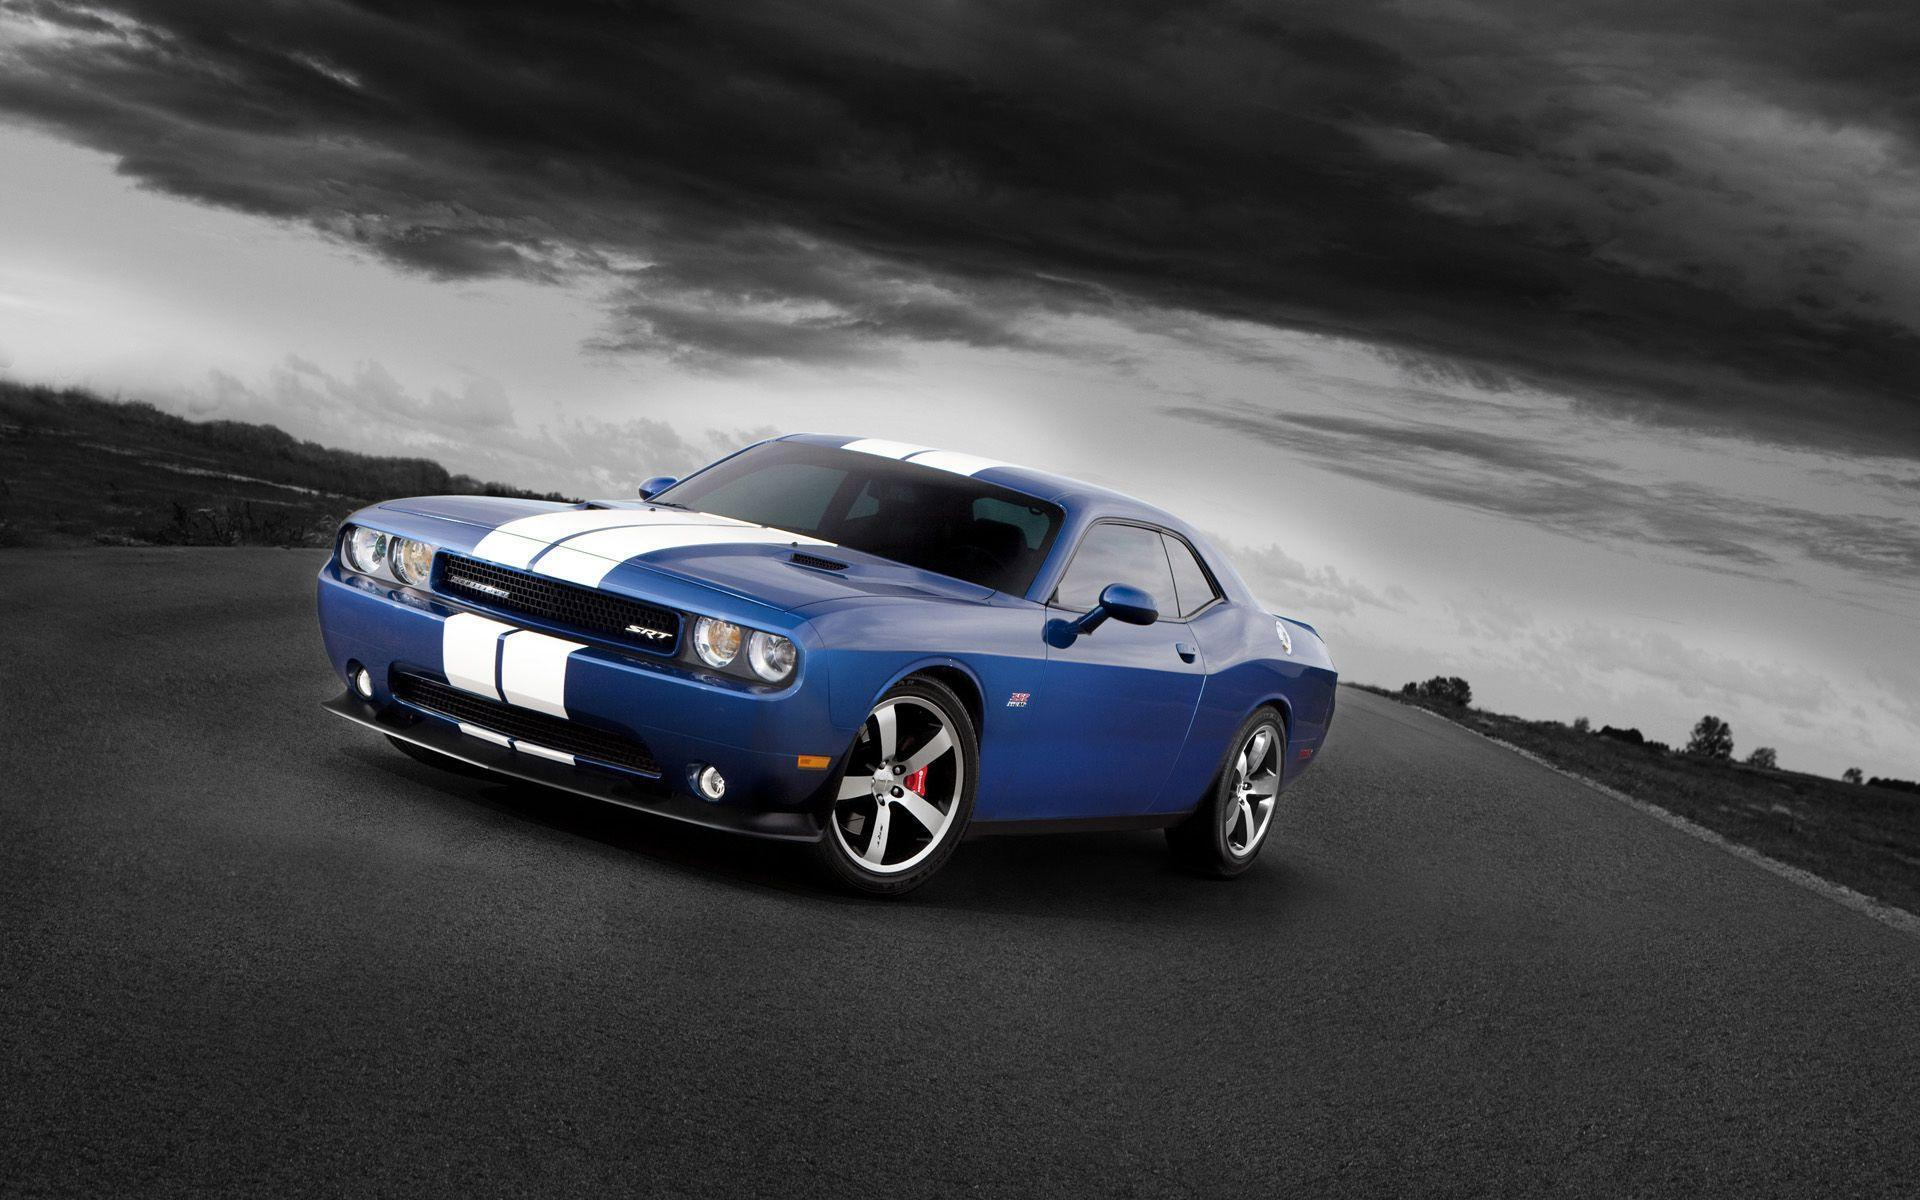 Dodge Challenger 2014 >> Dodge Challenger Wallpapers - Wallpaper Cave